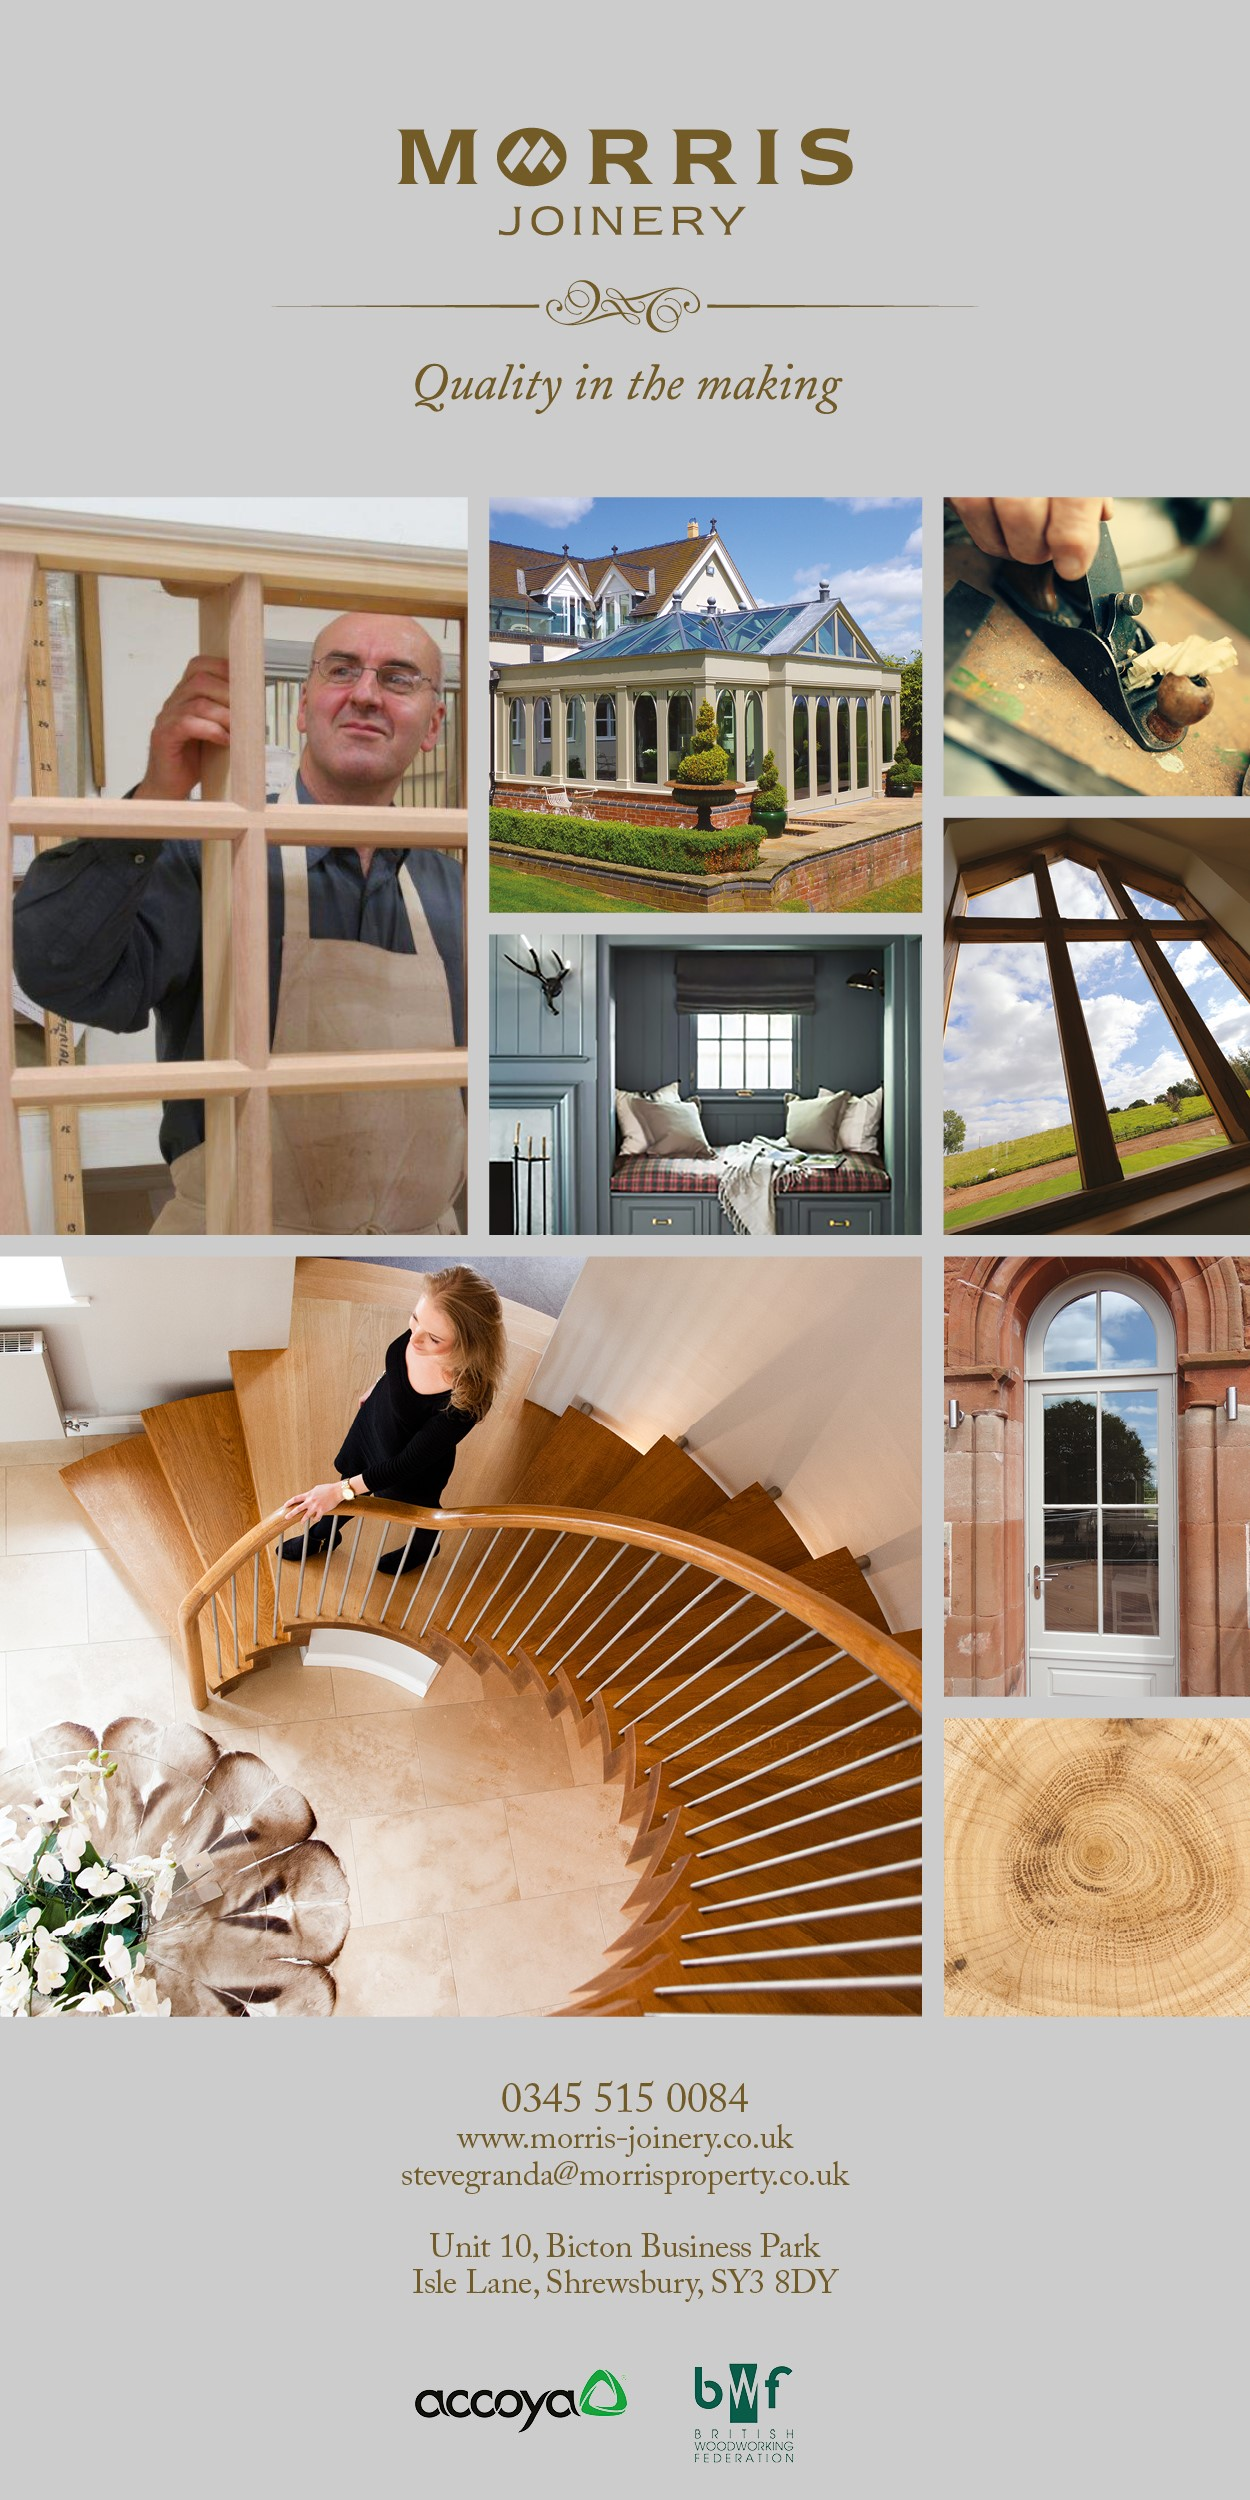 htto://www.morris-joinery.co.uk